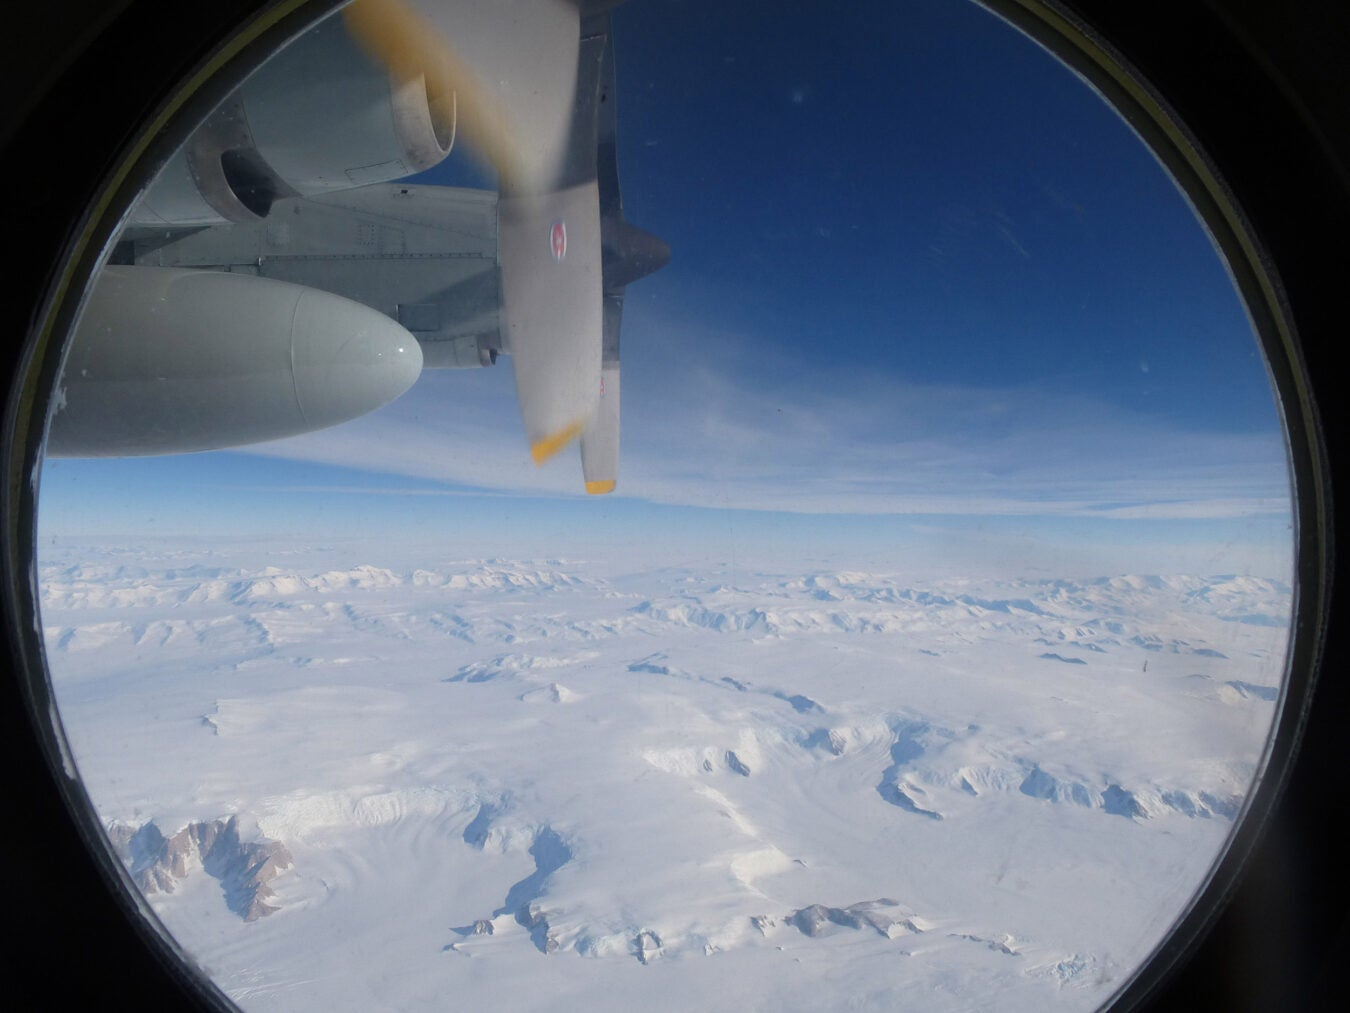 View from a flight crossing the transantarctic mountains.